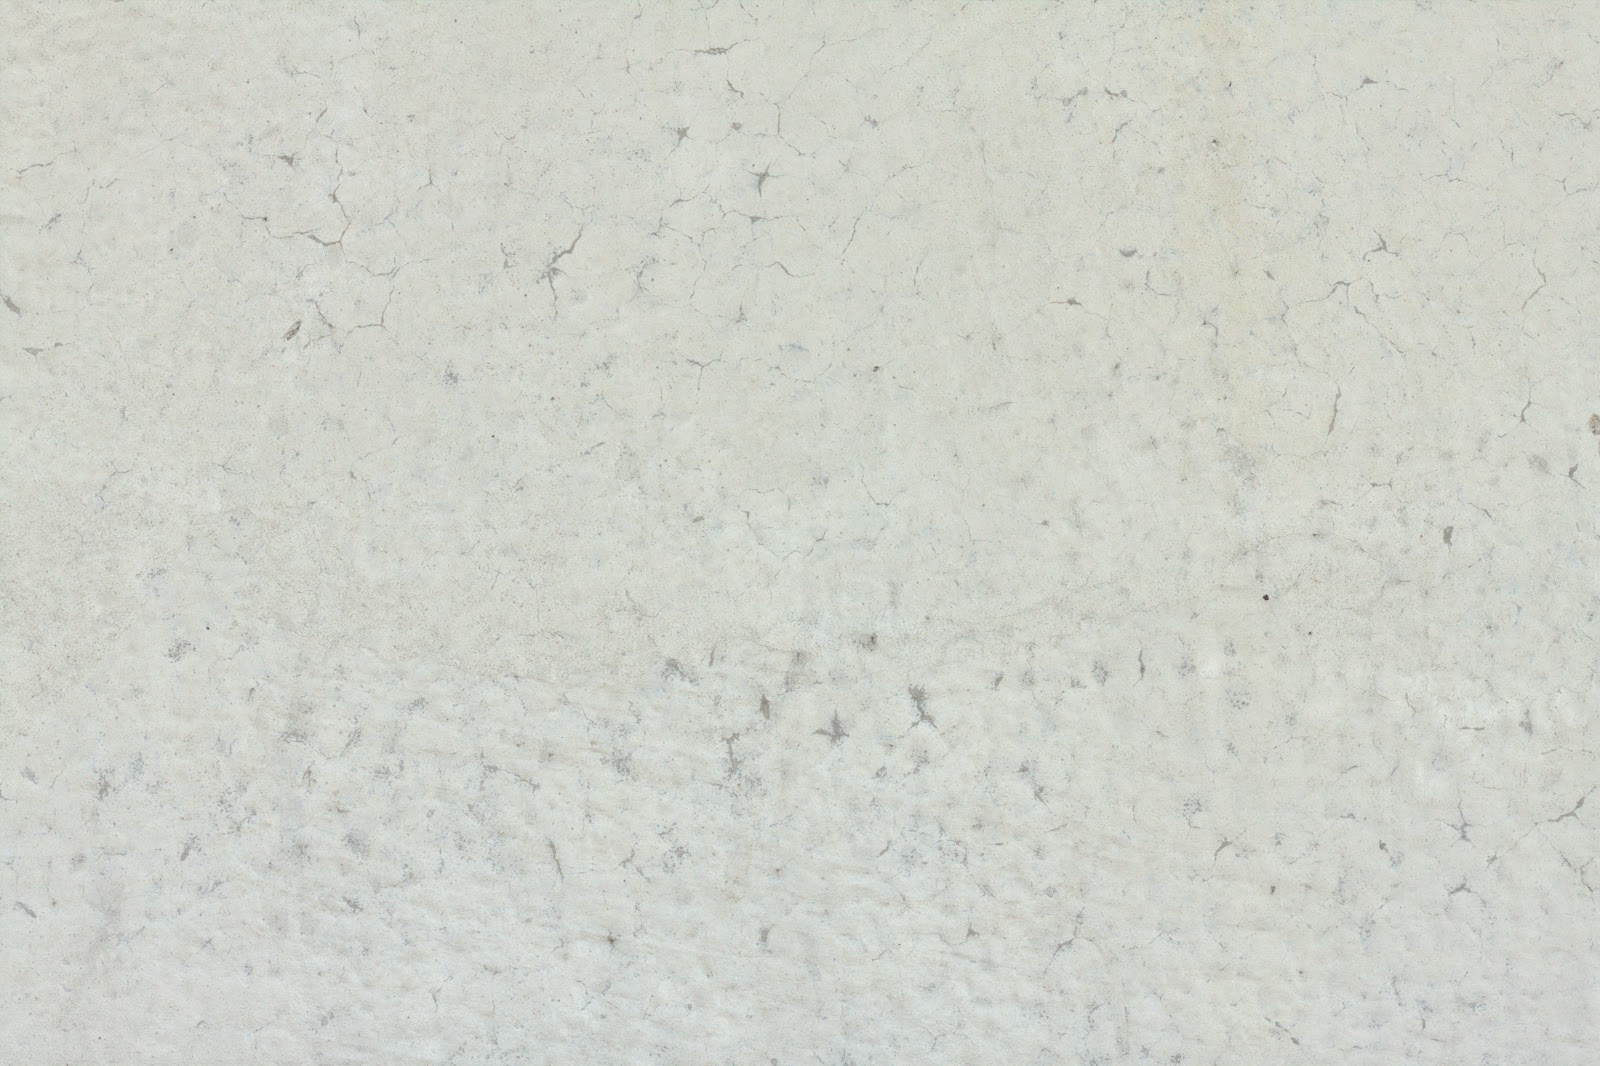 Wall white flat texture 4770x3178